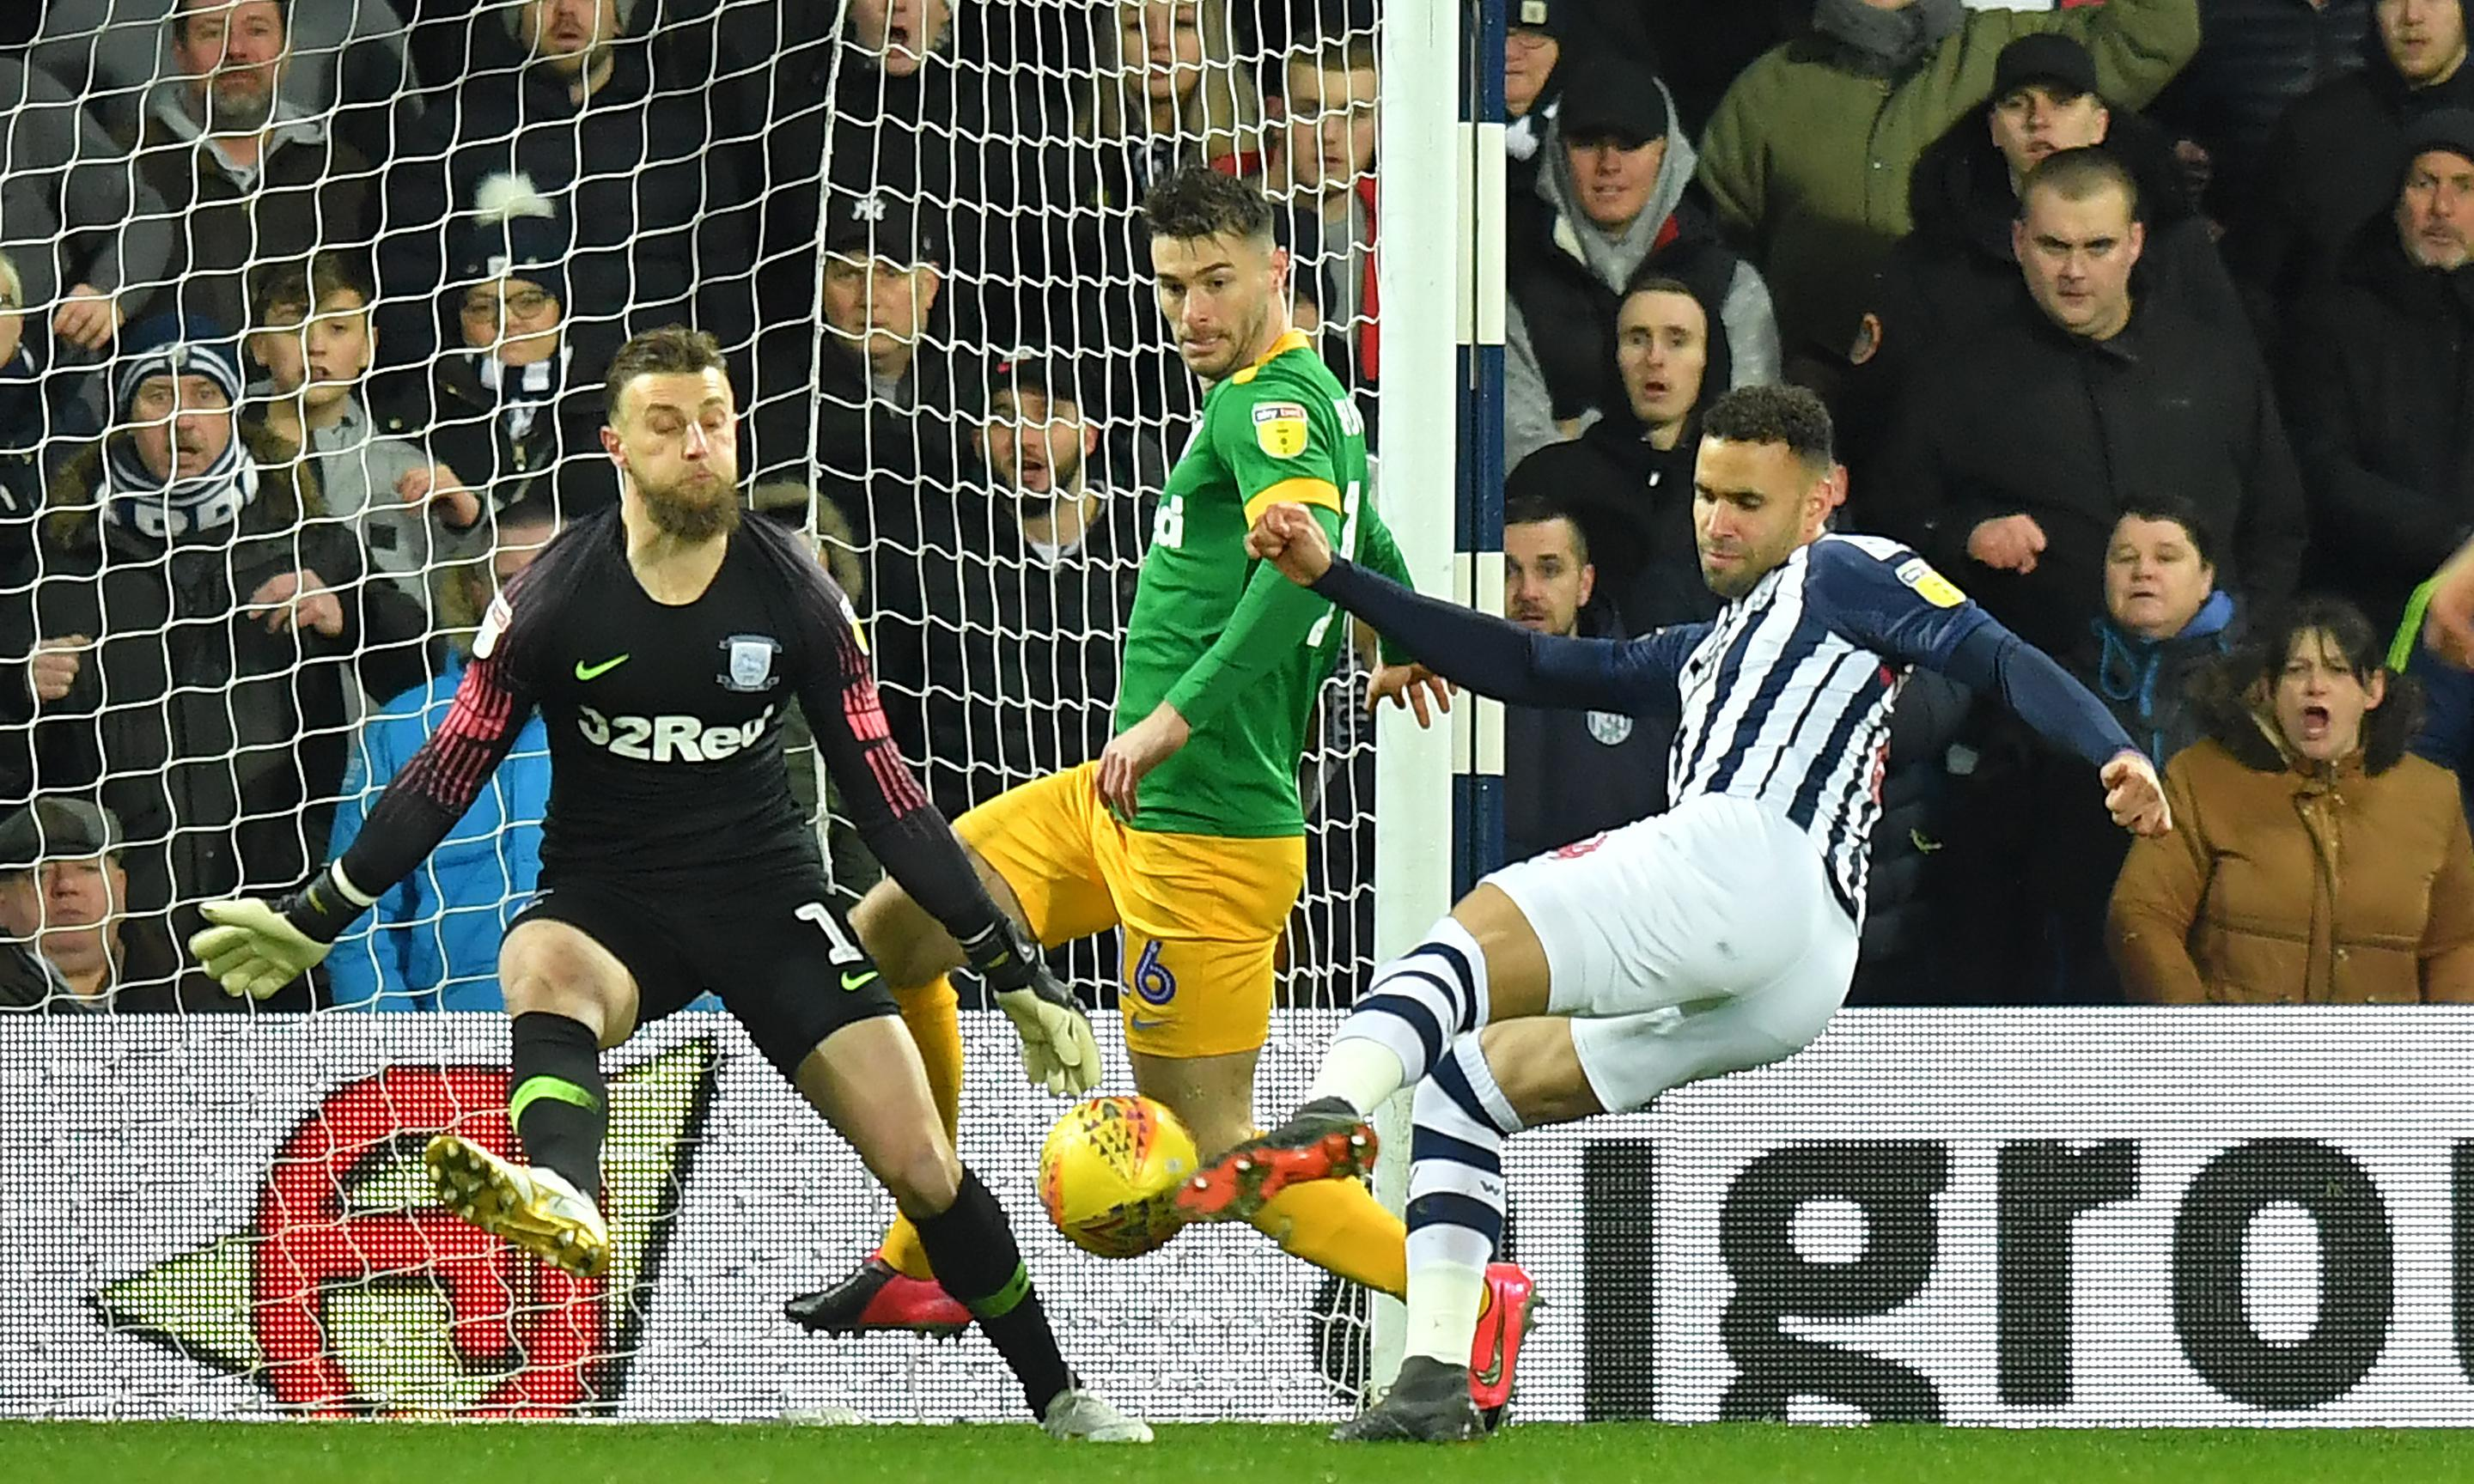 Championship roundup: Robson-Kanu extends West Brom's lead at the top